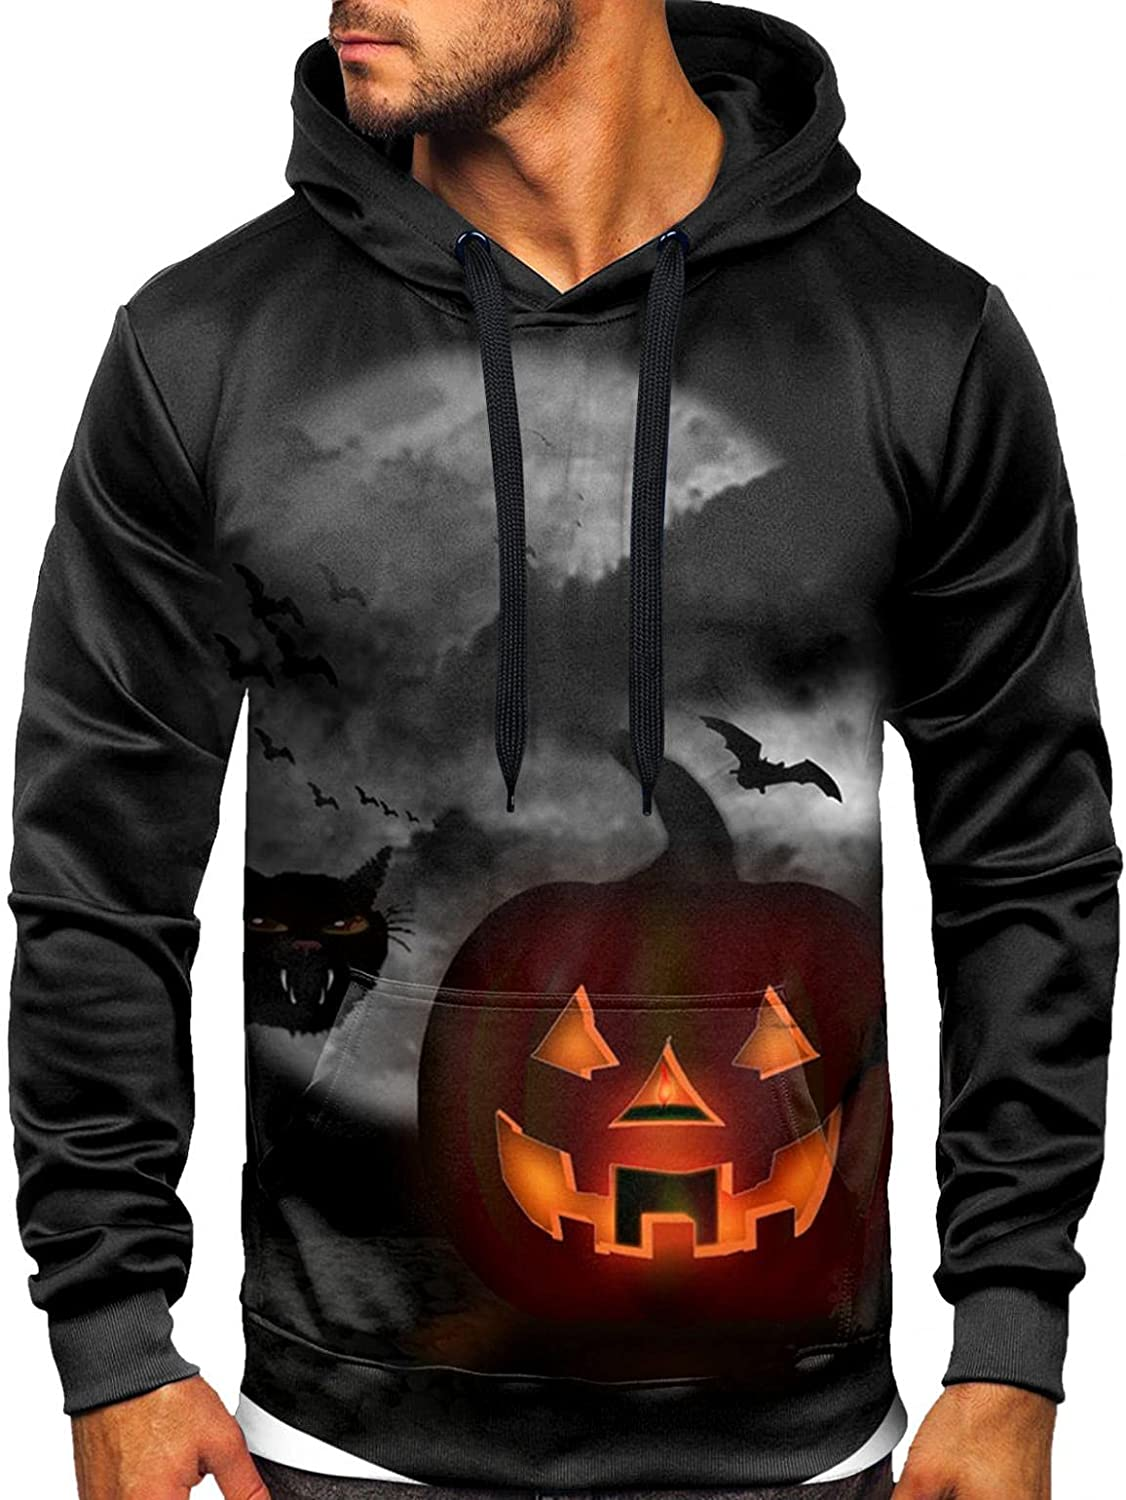 Aayomet Shirts for Men Halloween Printed Pullover Color Splice Shirts Patchwork Long Sleeve Casual Hoodies